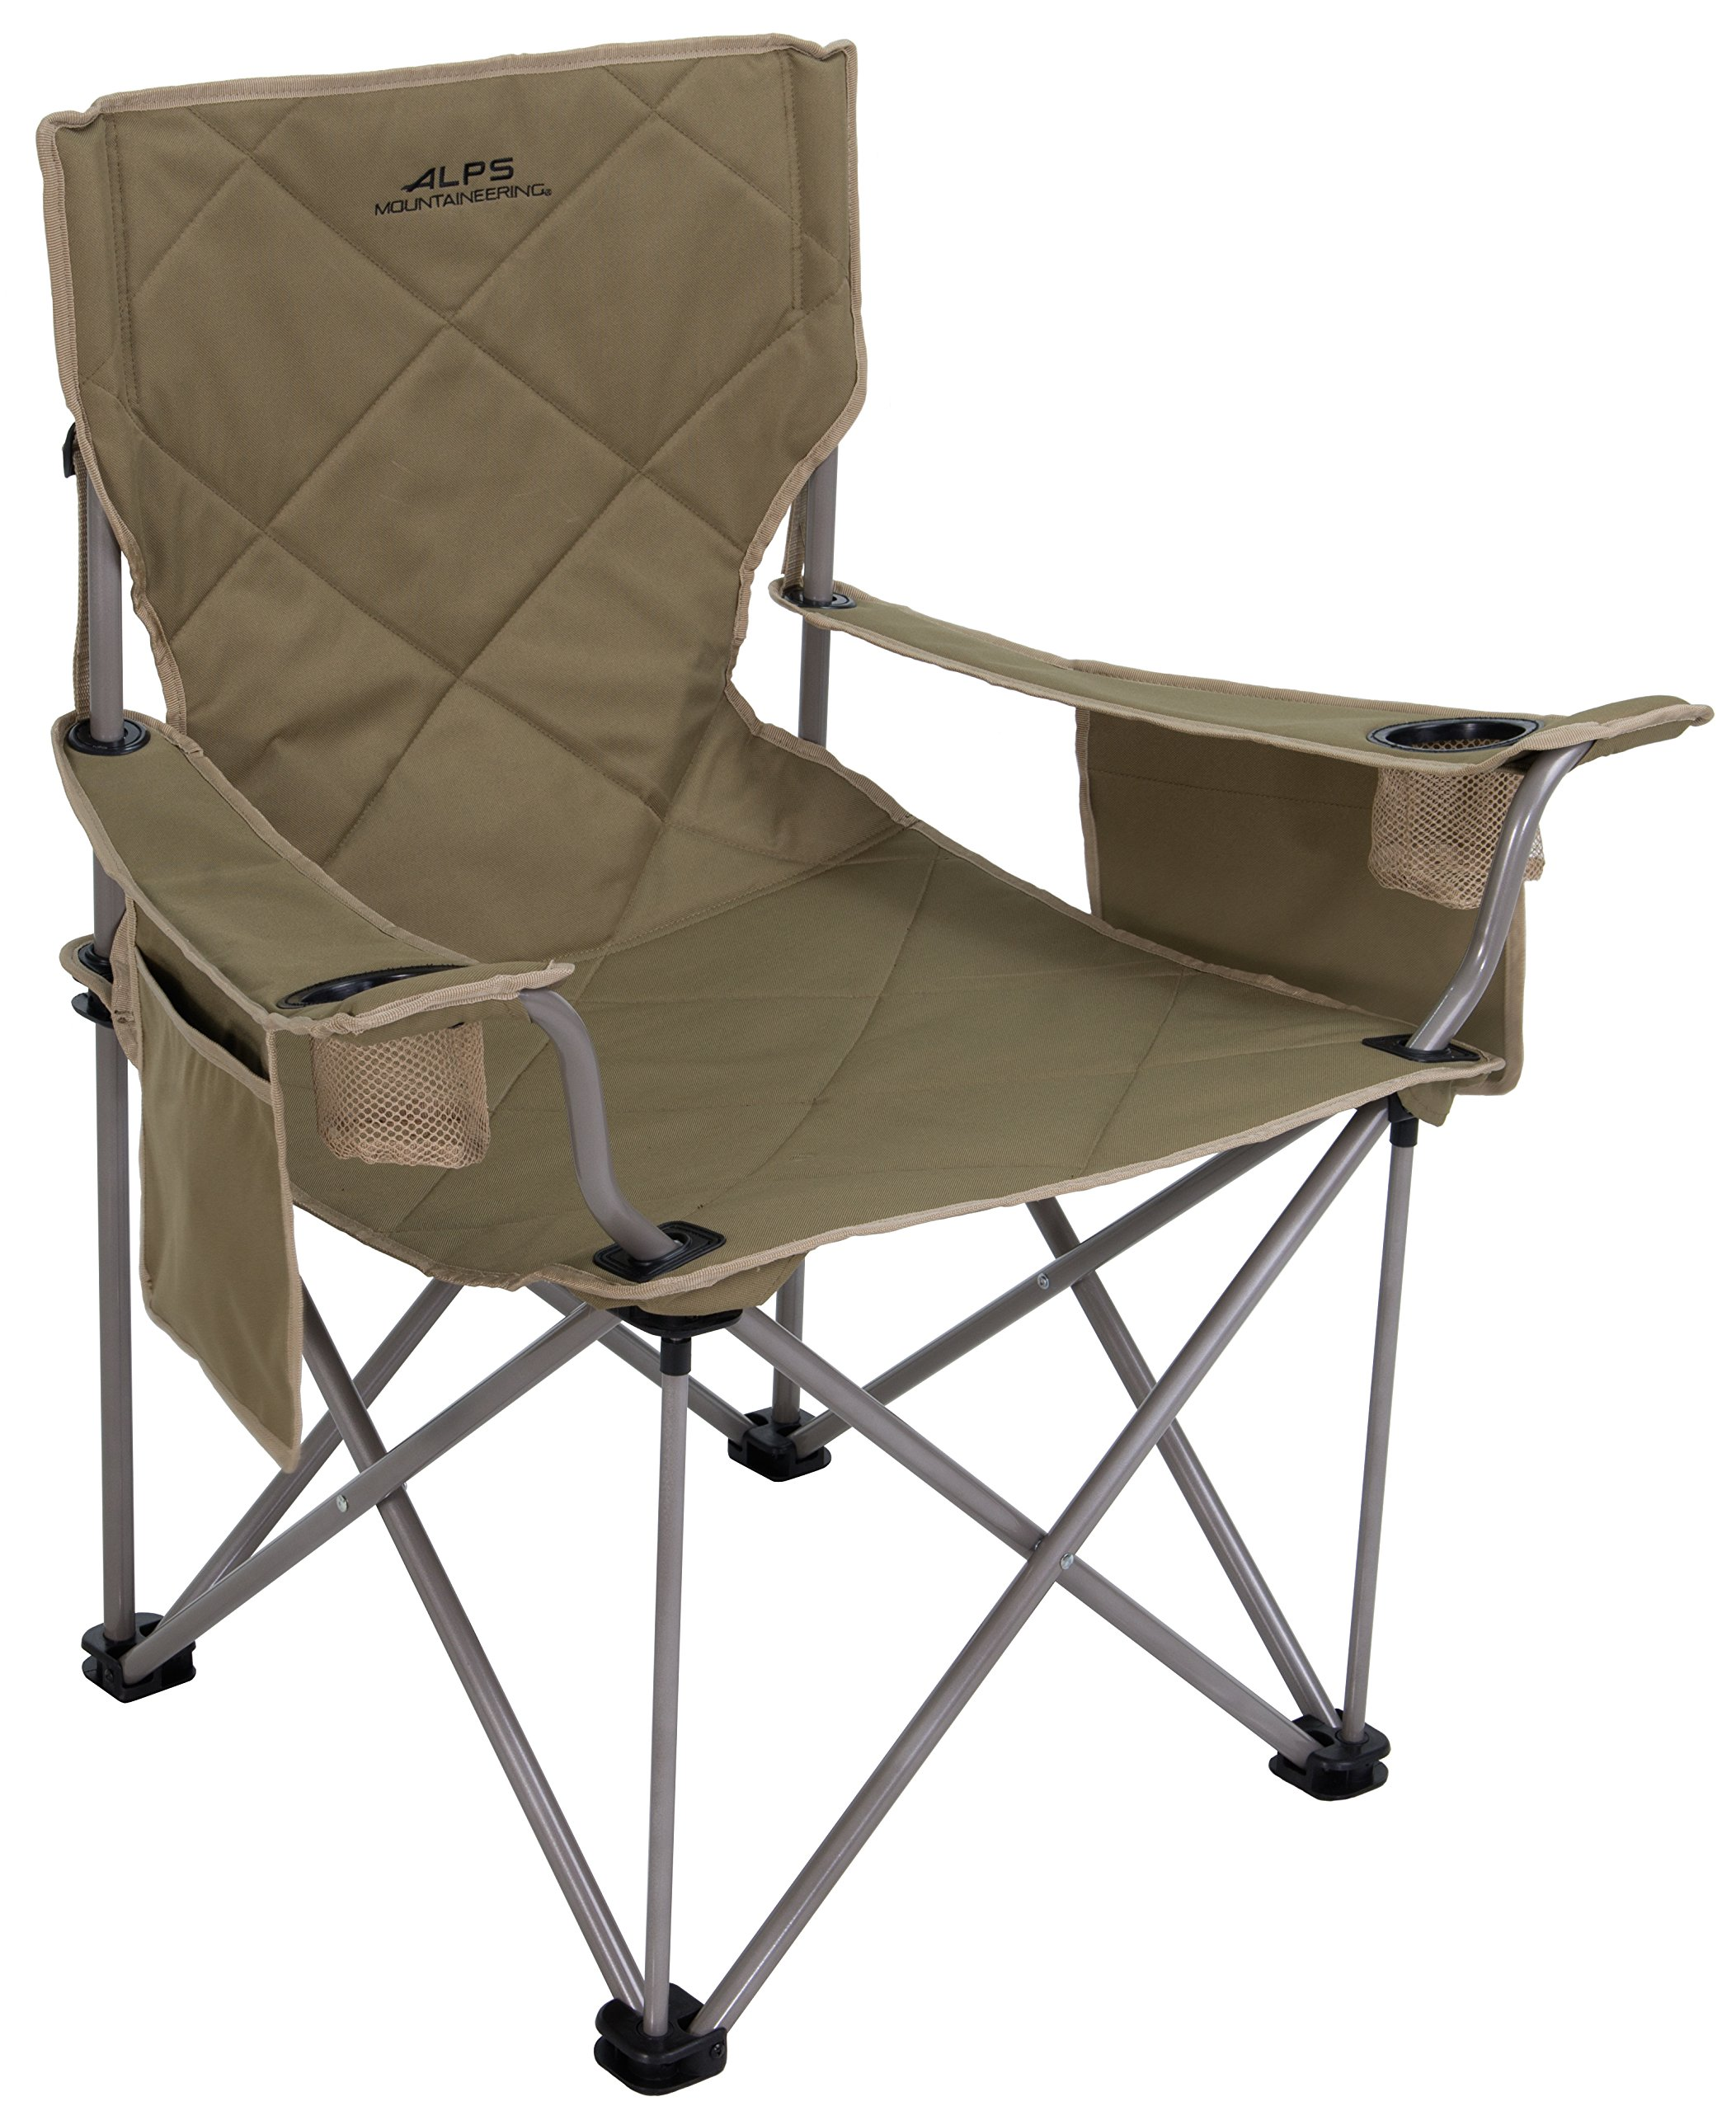 ALPS Mountaineering King Kong Chair, Khaki by ALPS Mountaineering